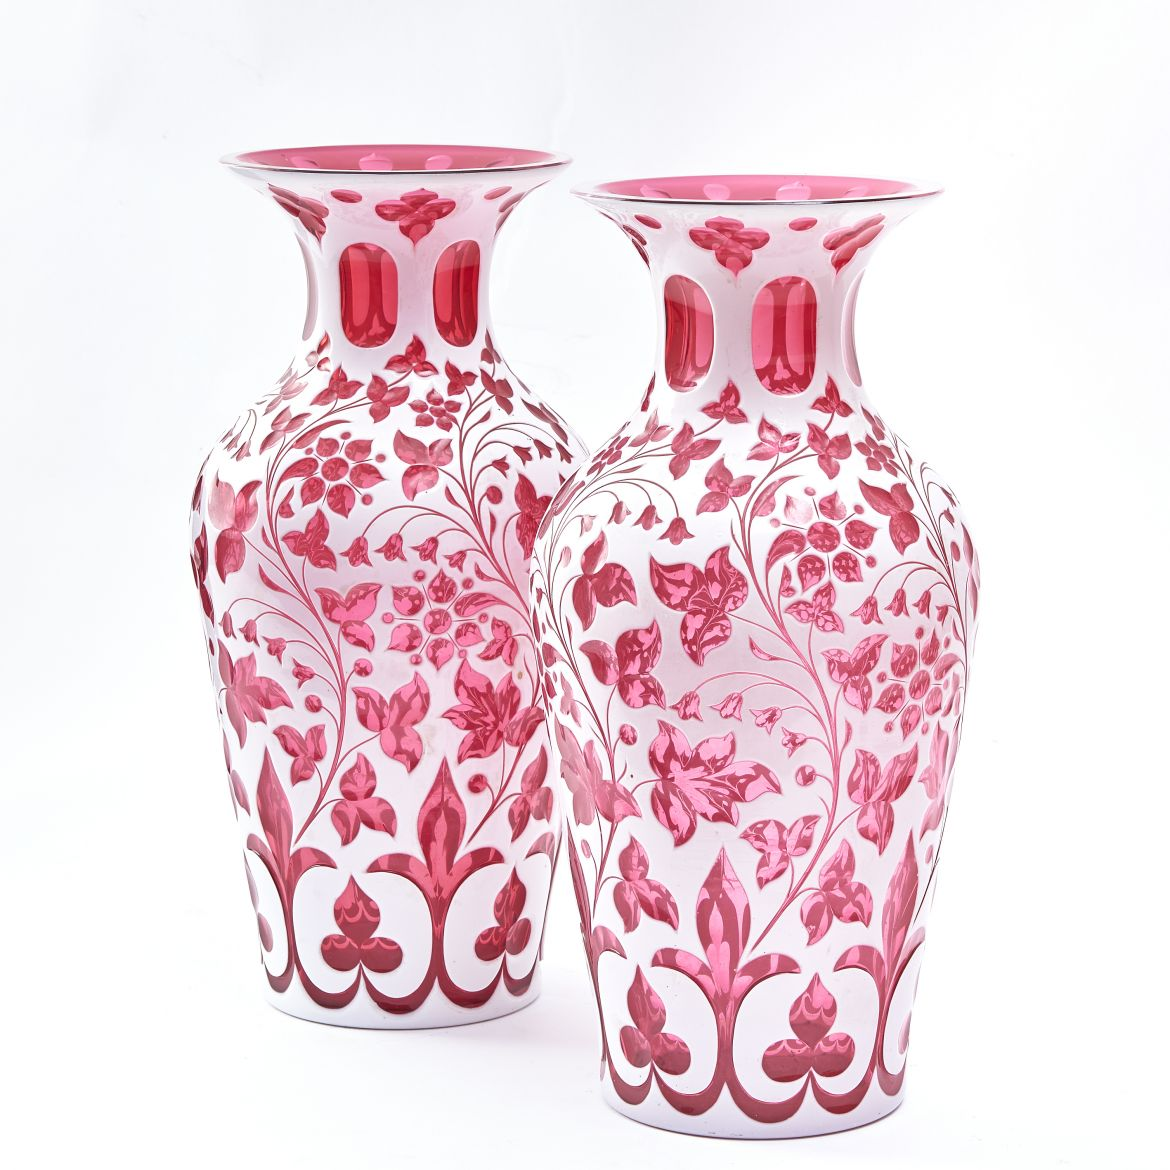 Bohemian Cranberry Glass Vases